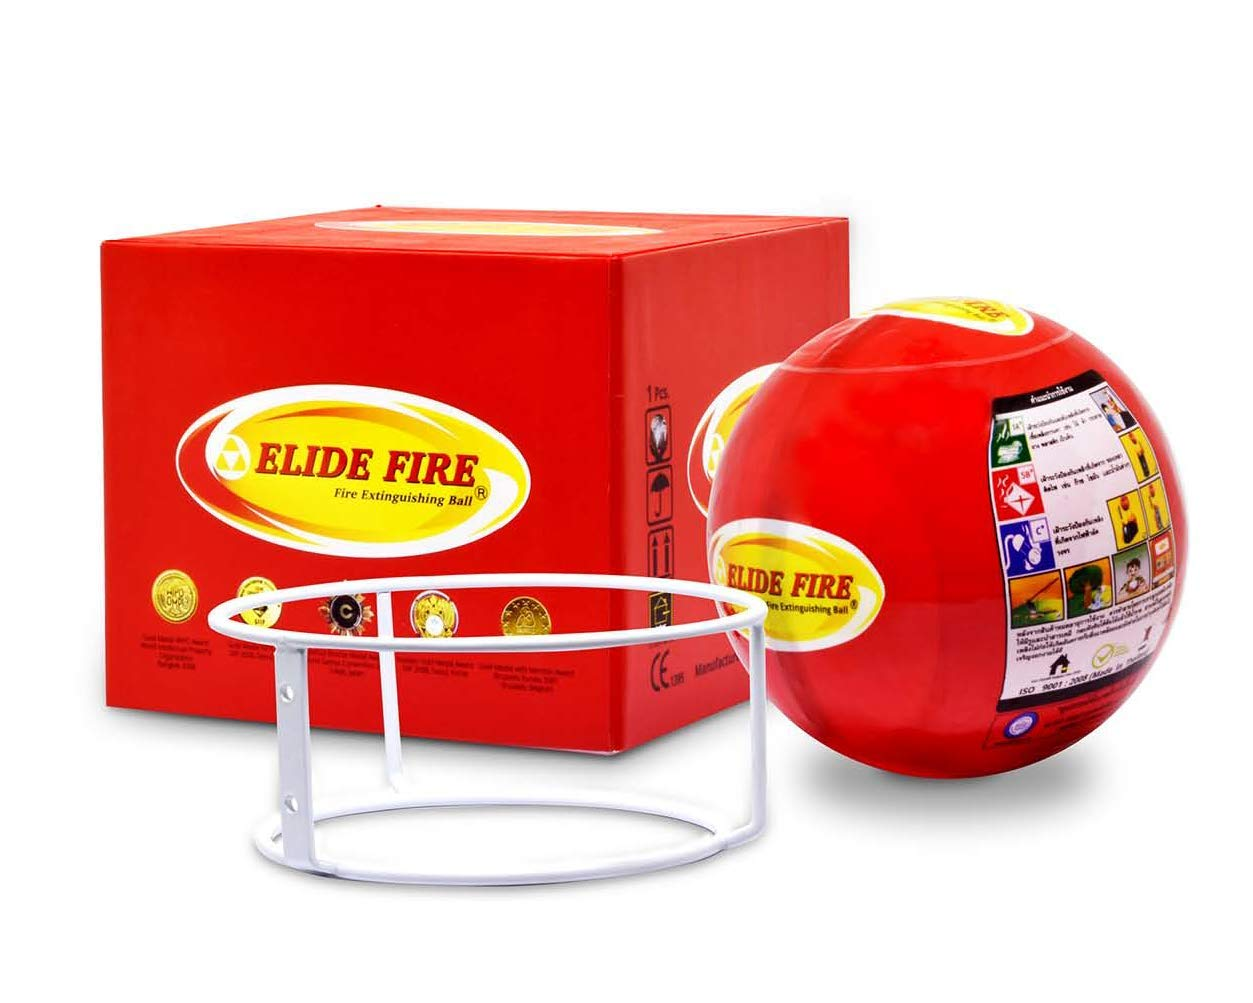 Elide Fire Ball, Self Activation Fire Extinguisher, 2018 New Version , Boat Extinguisher, Car Extinguisher, Fire Safety Product, Elide, 5 Year warranty